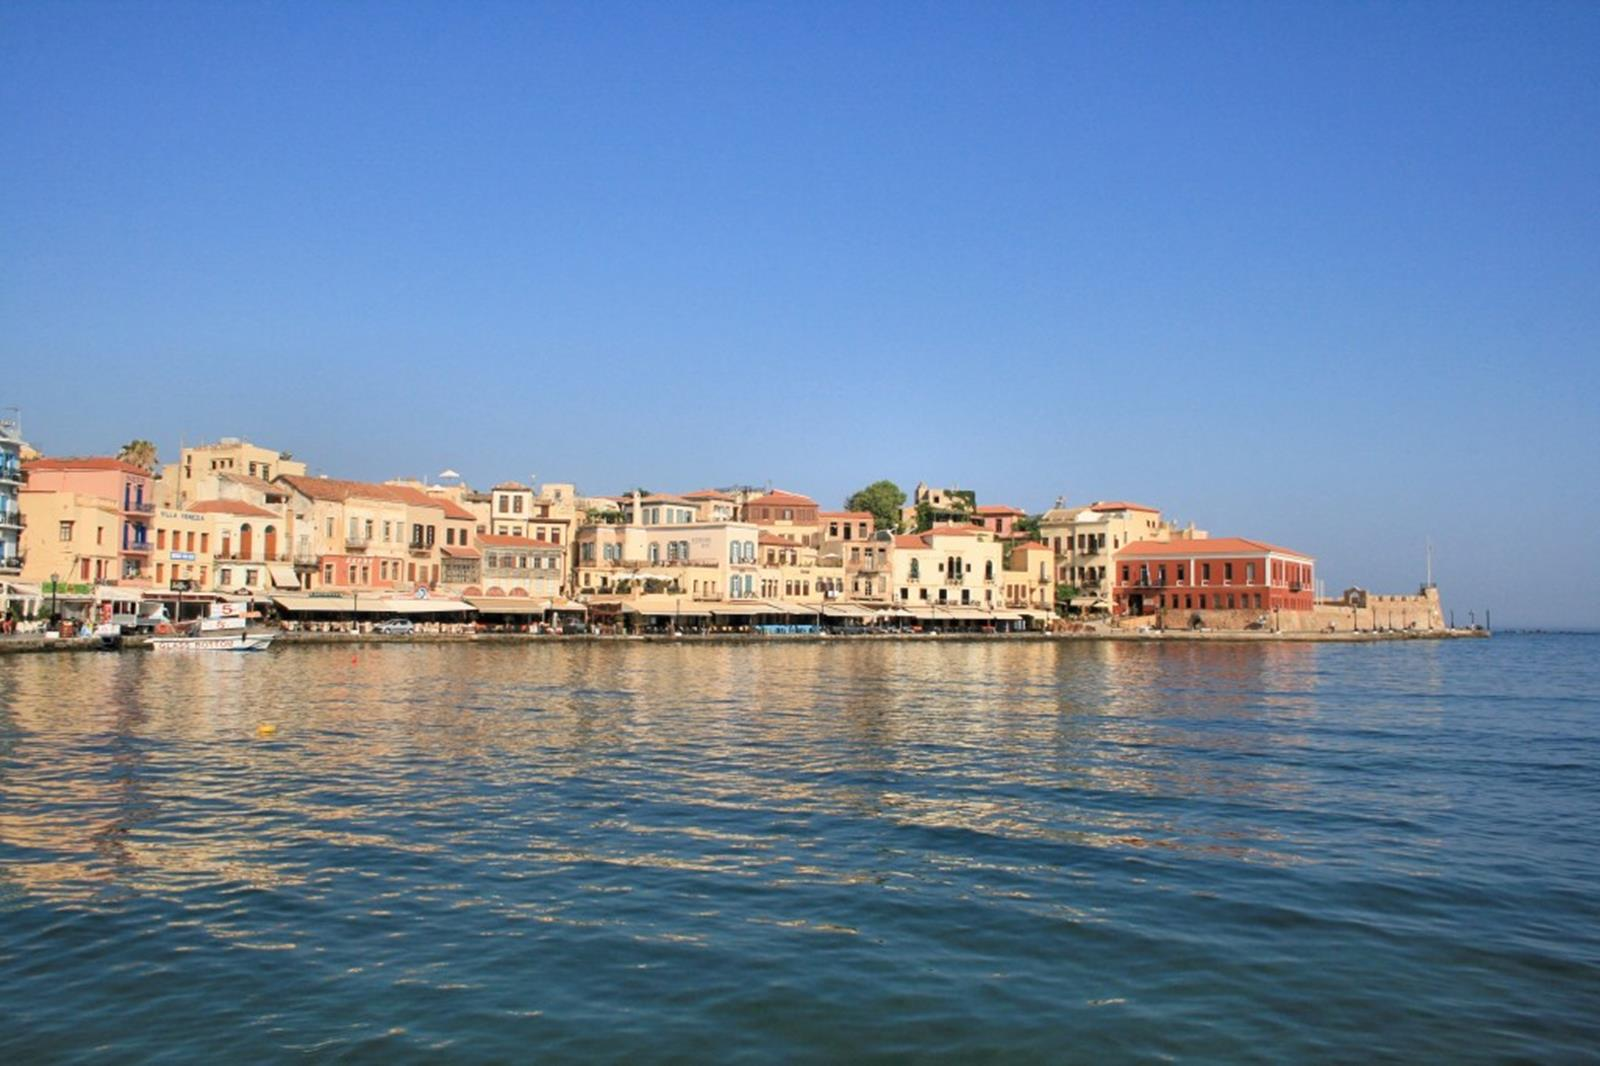 The Venetian Port at Chania